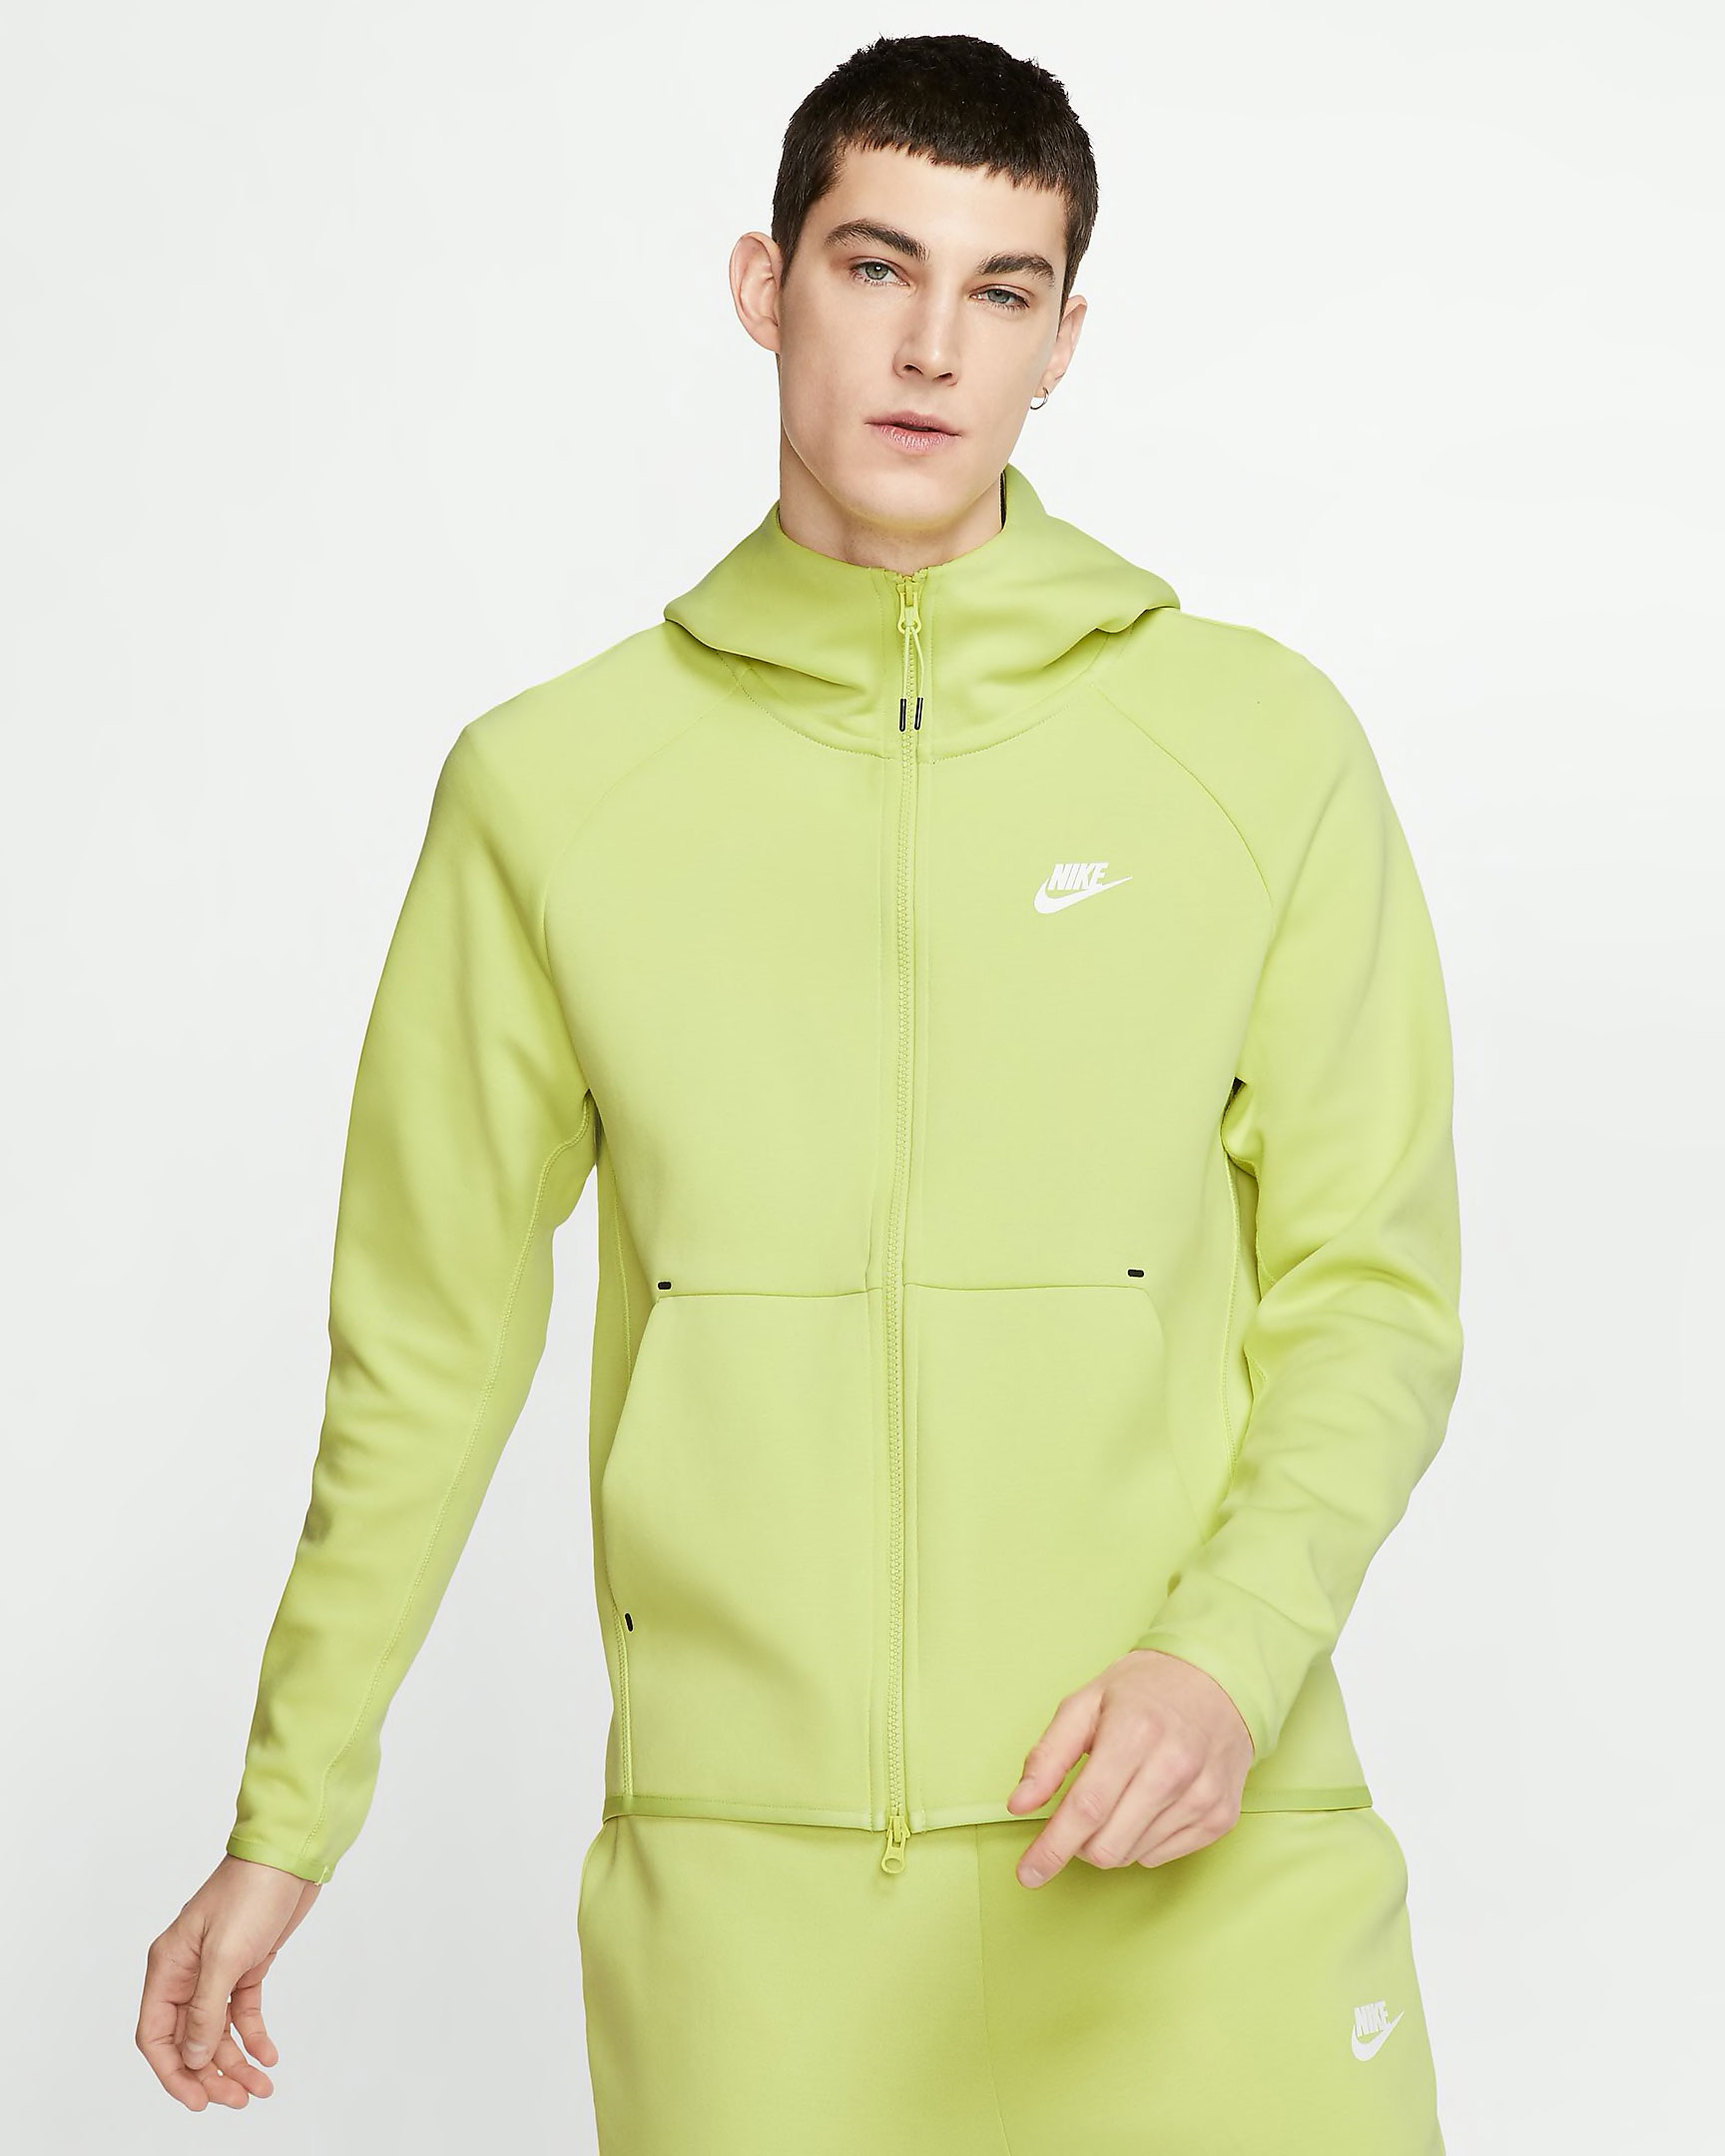 Lime Green Nike Jogging Suit Cheap Online